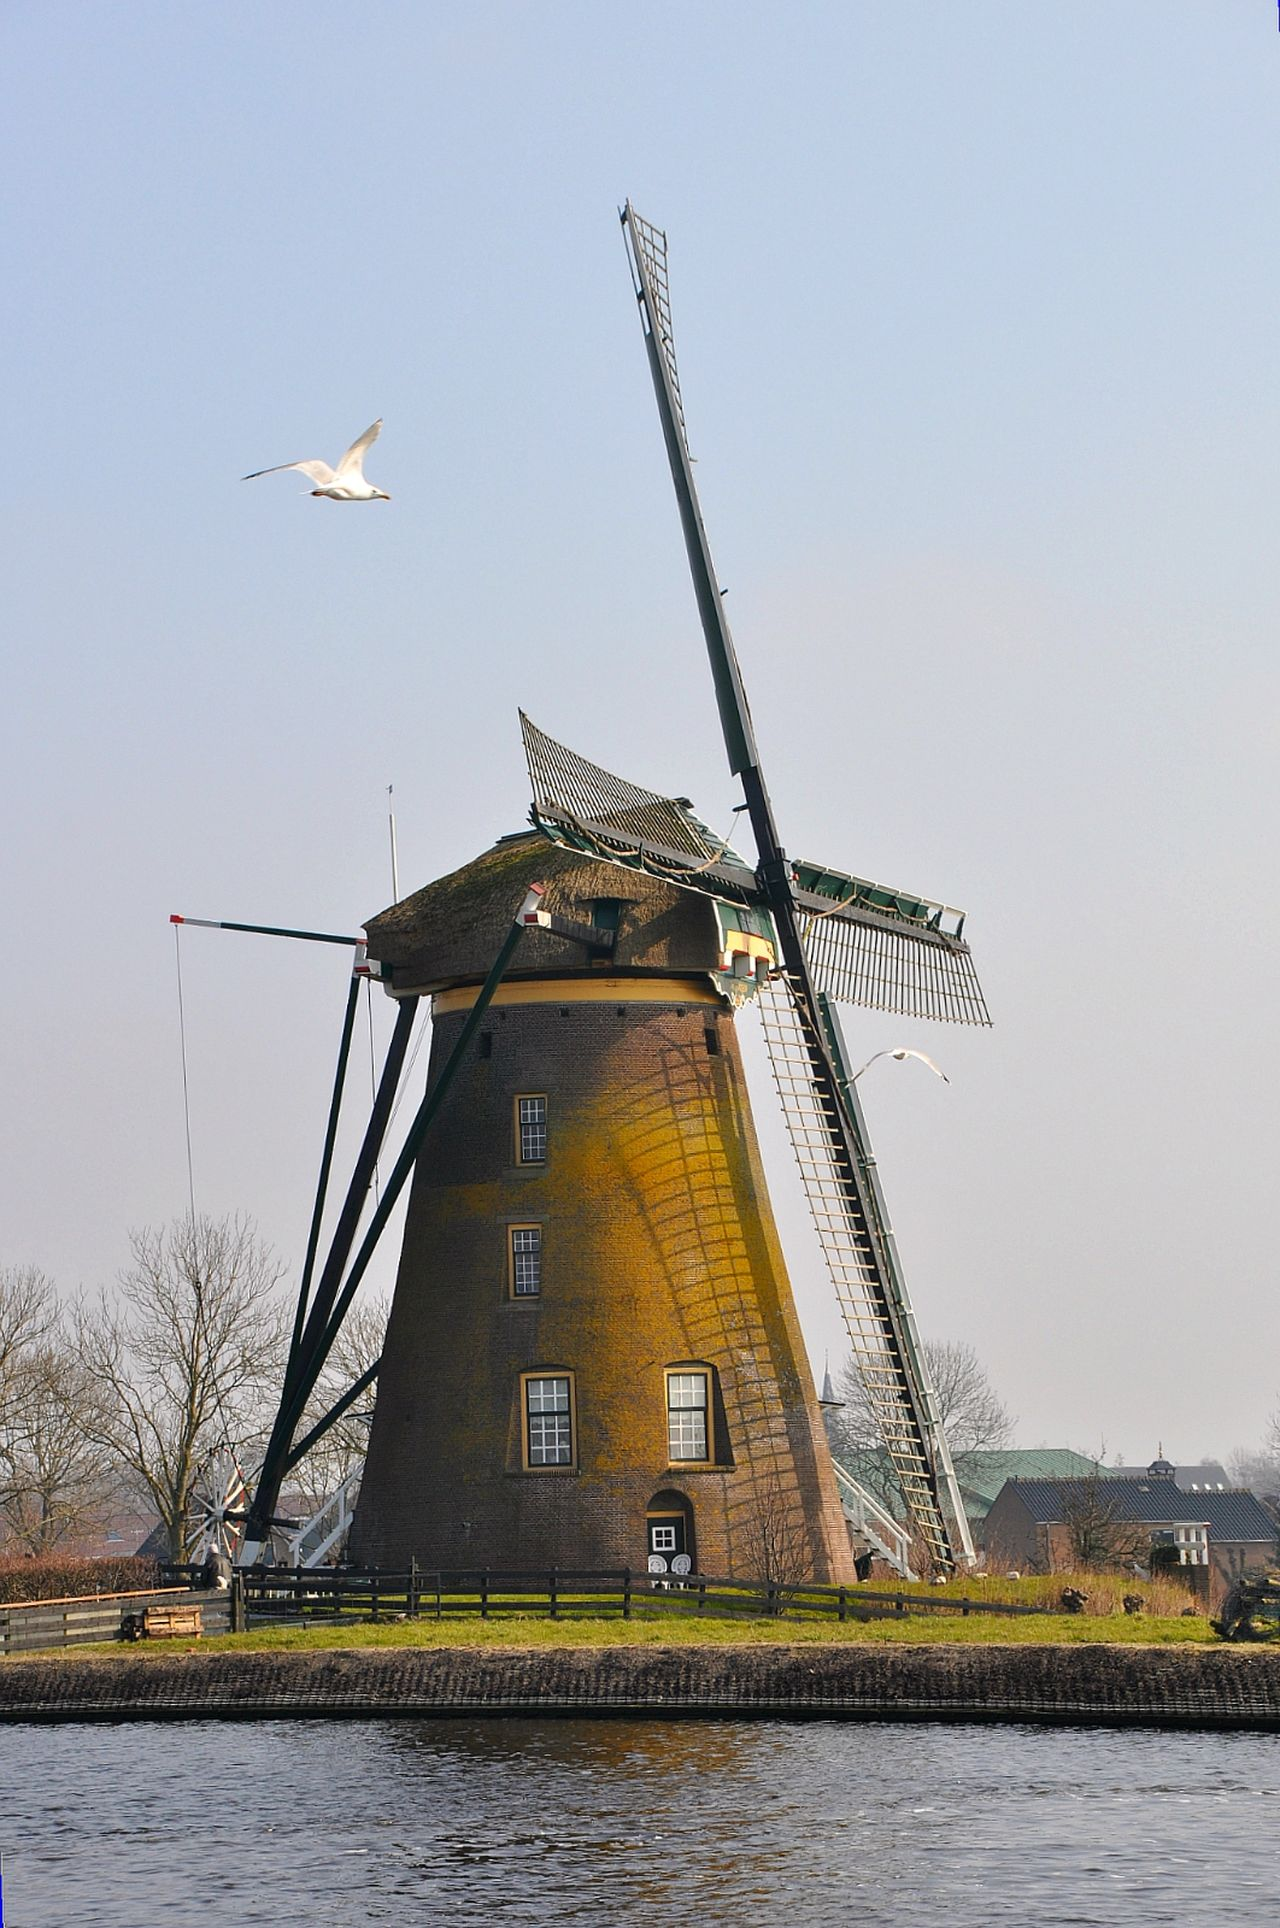 Windmill Mill Dutch Countyside Windmills Mills Countryside Windmolen Windmills Photography Molen Dreamscapes Of Holland Farmscape Dutch Landscape Counrtylife Landscape Dutch Landscapes Counrtyside Dutch Windmill Dutch Mills Landscapes Dutch Dreamscapes Farmland EyeEm Best Shots - Nature Landscape_photography Taking Photos Check This Out